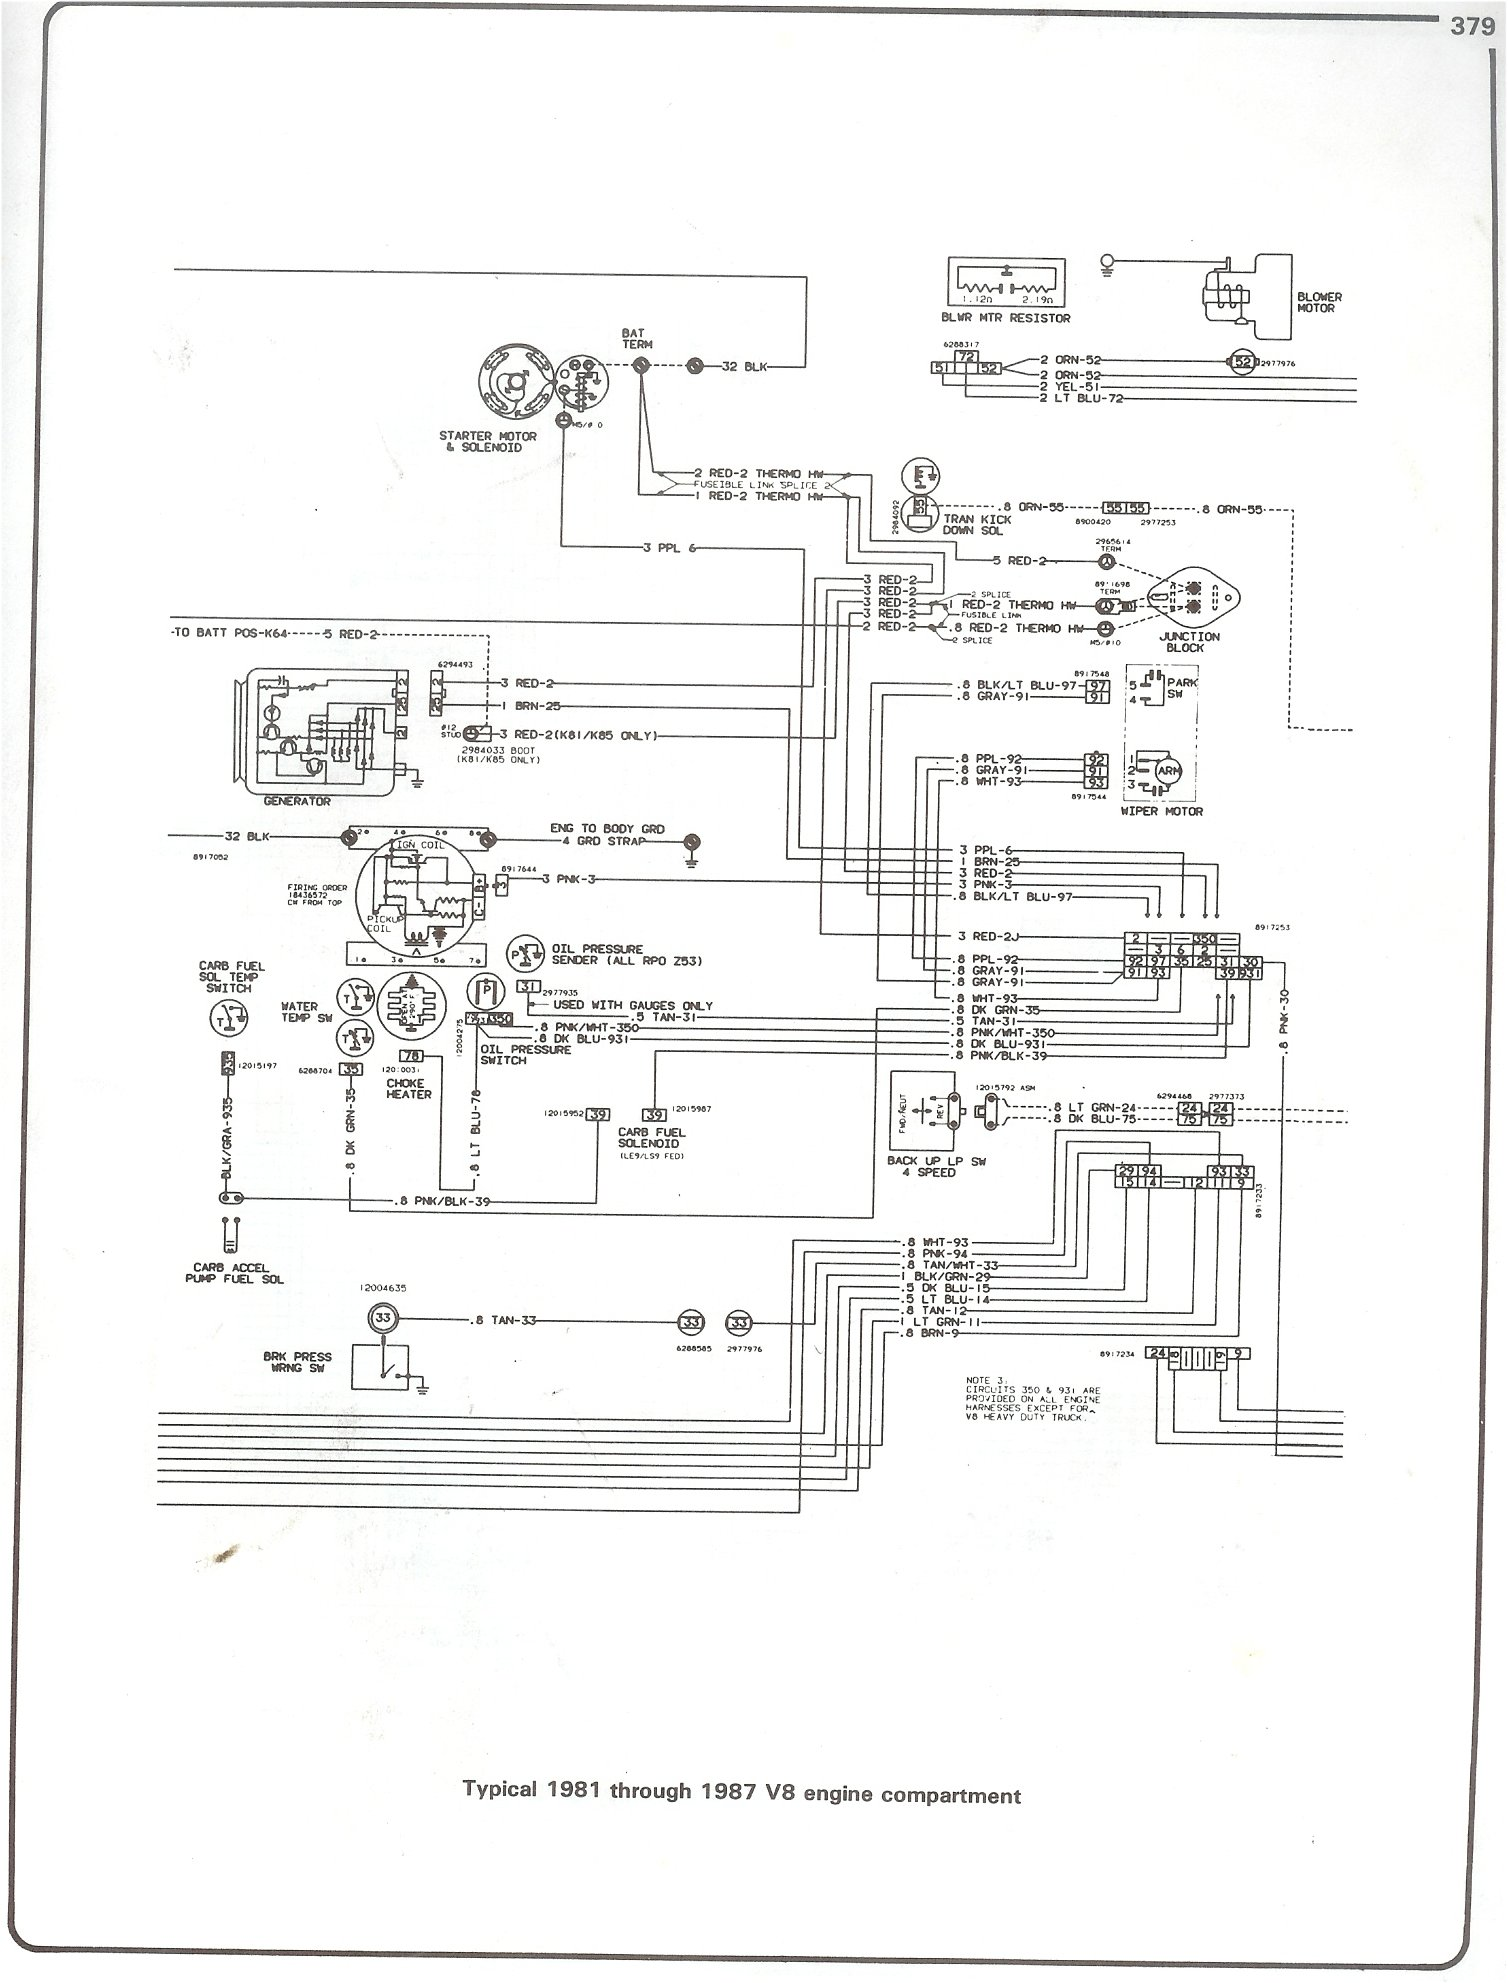 81 87_V8_engine complete 73 87 wiring diagrams 87 chevy r10 wiring diagram at gsmx.co